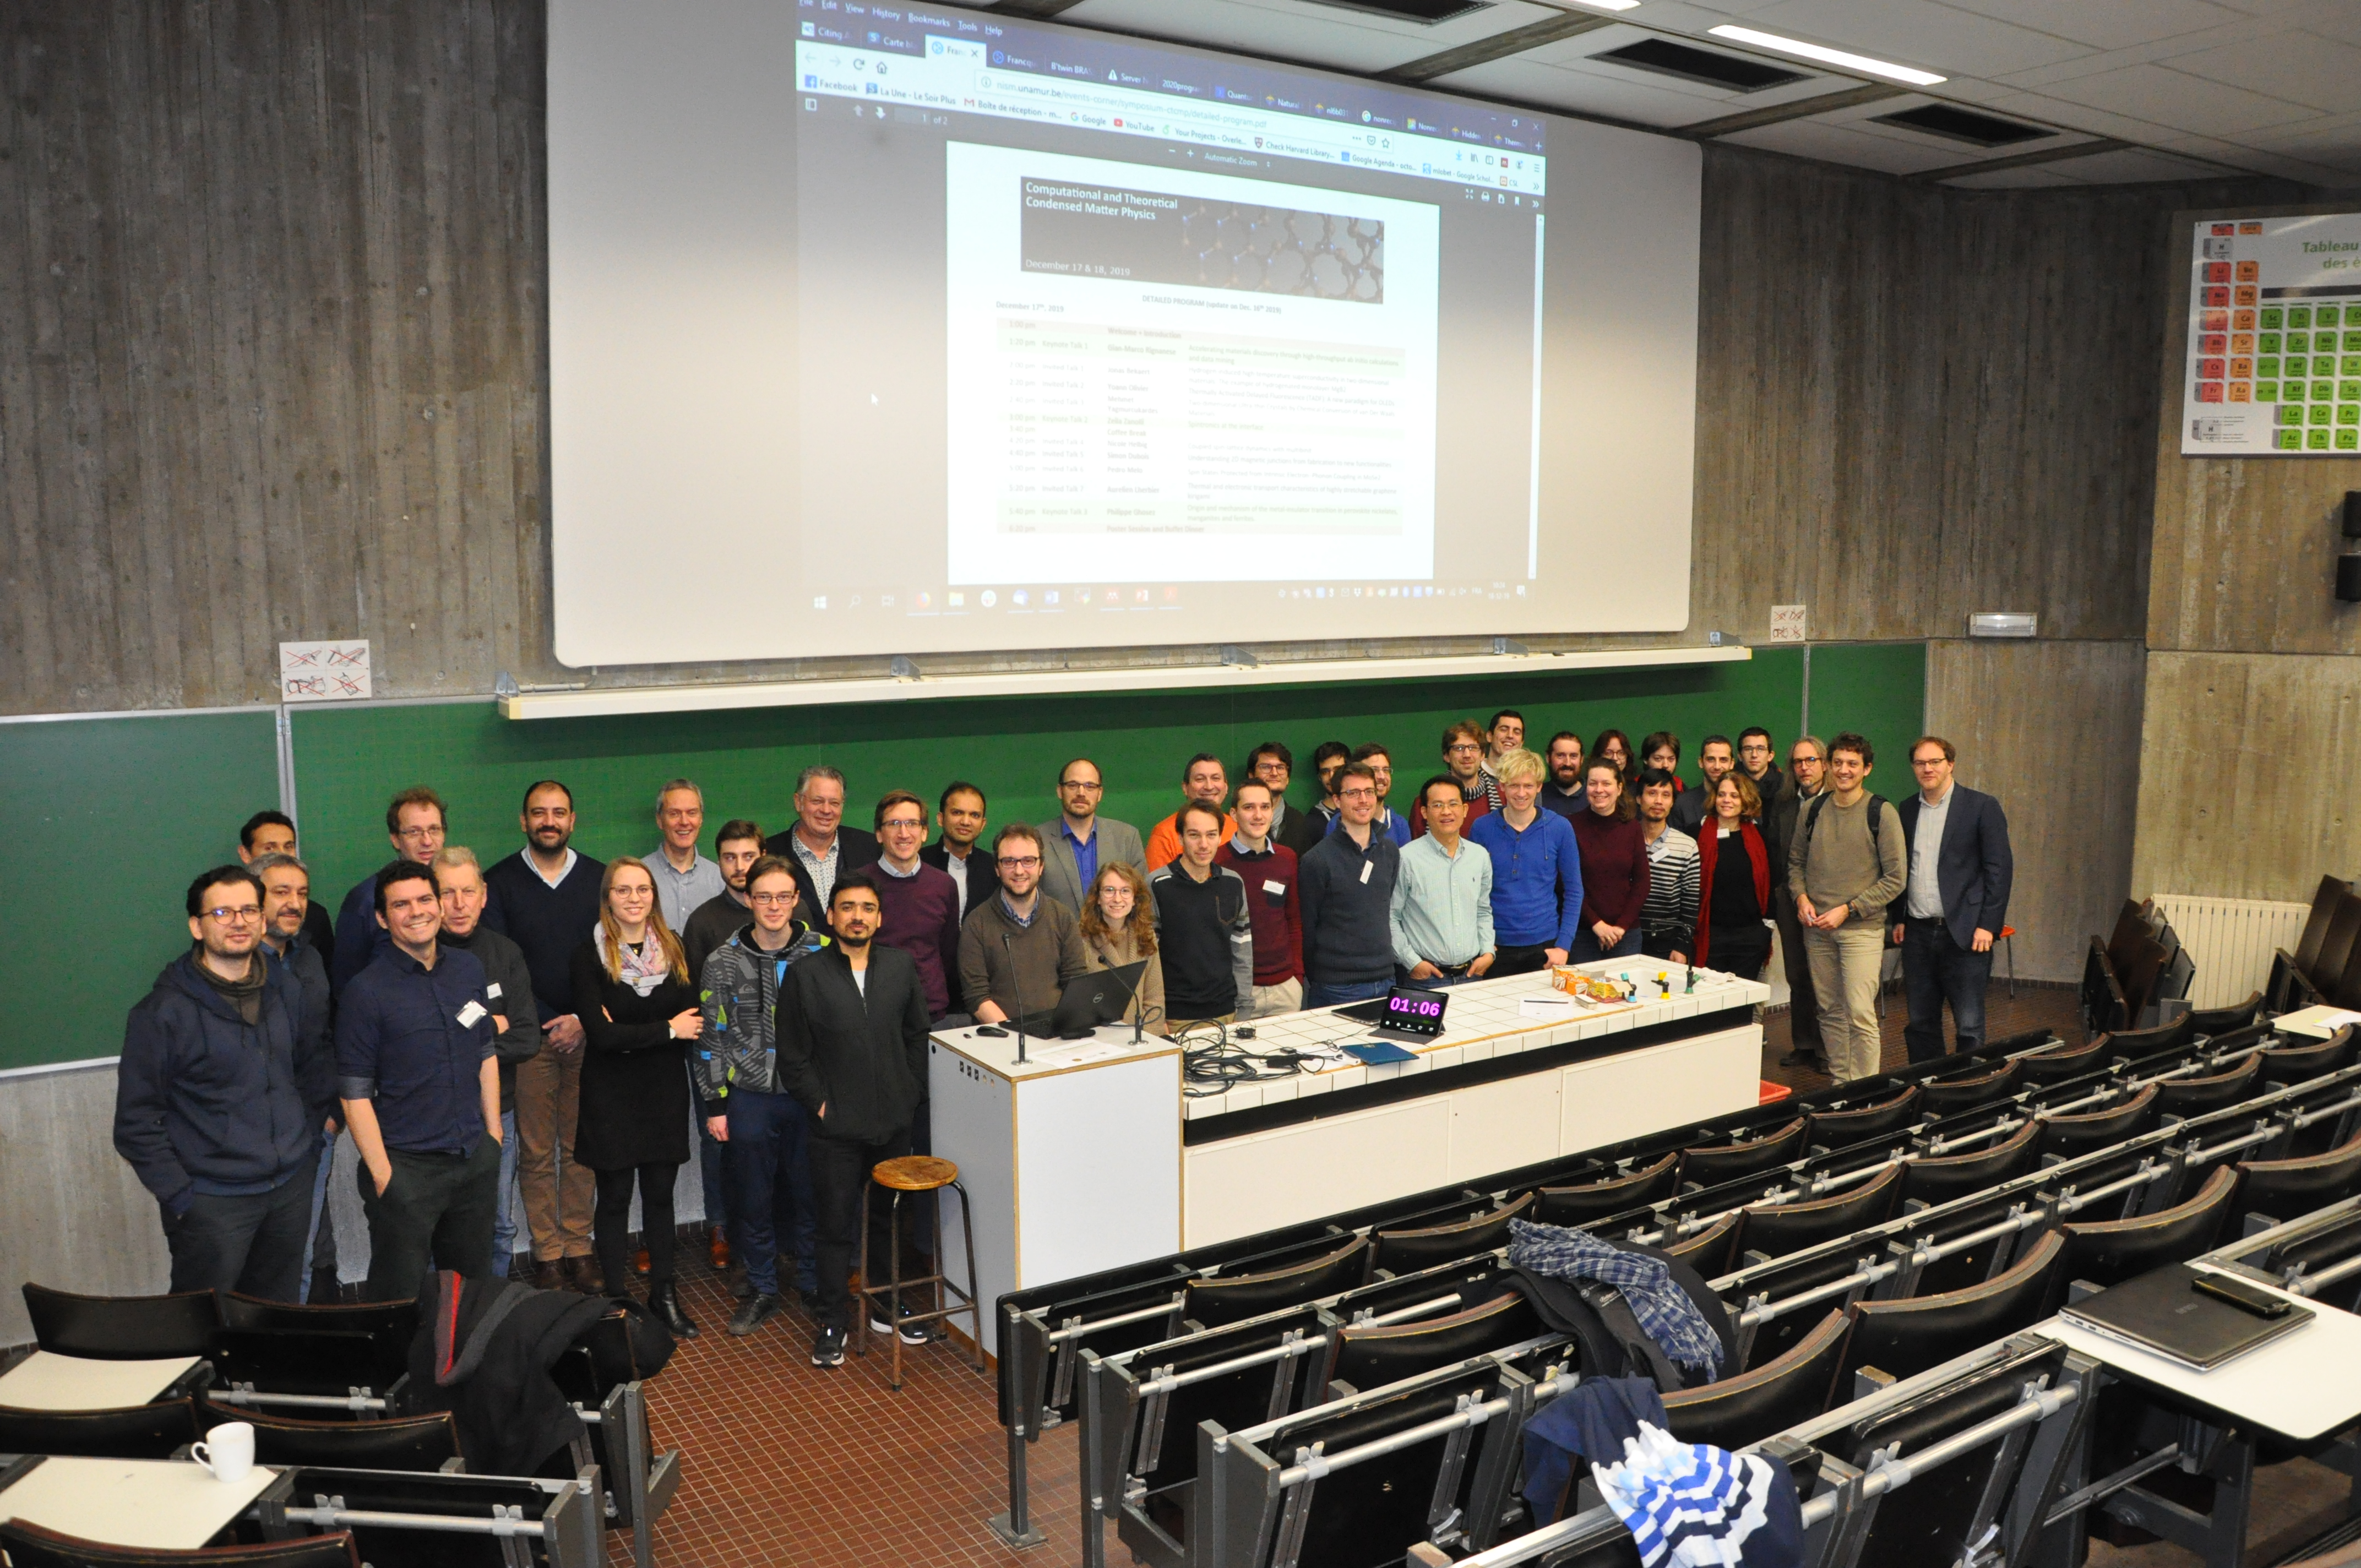 Participants to the Symposium: Computational and Theoretical Condensed Matter Physics